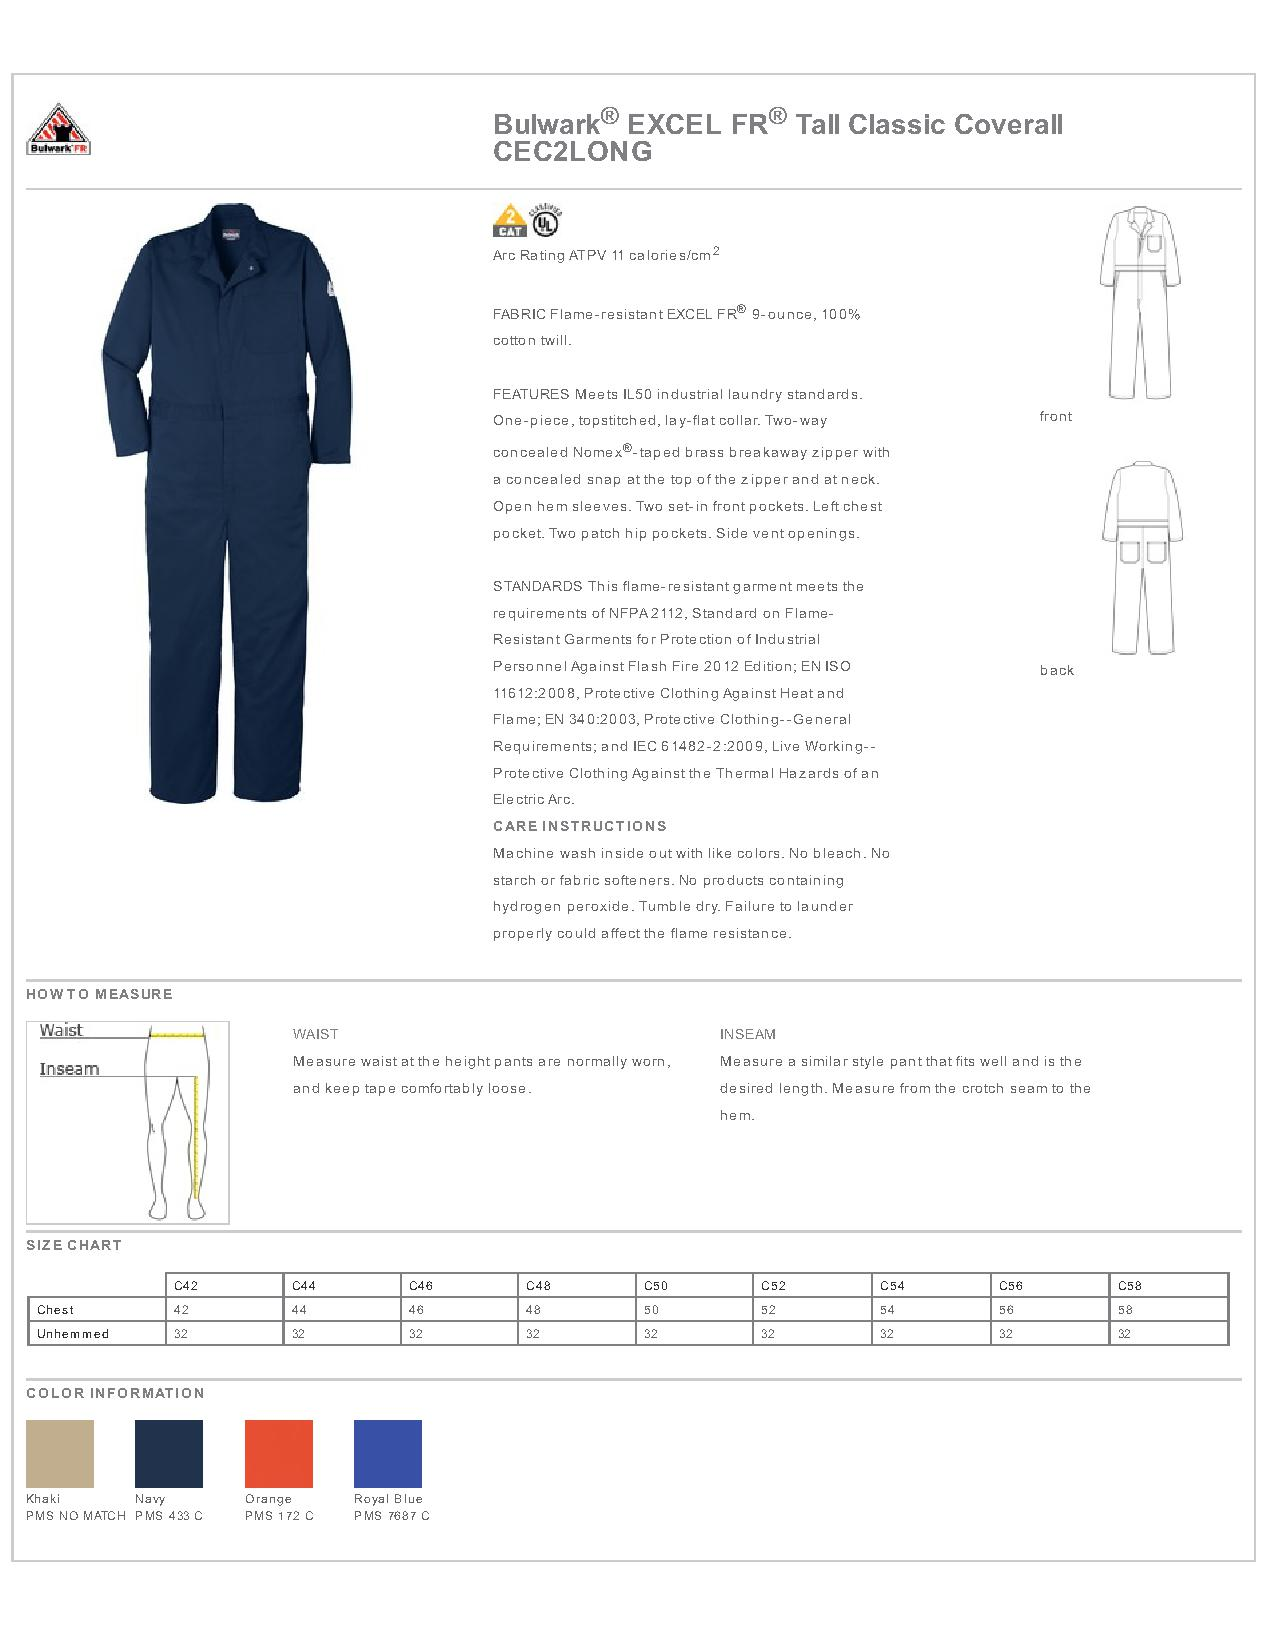 daf4bf35022 Bulwark EXCEL FR CEC2LONG - Tall Classic Coverall - Work Shirts